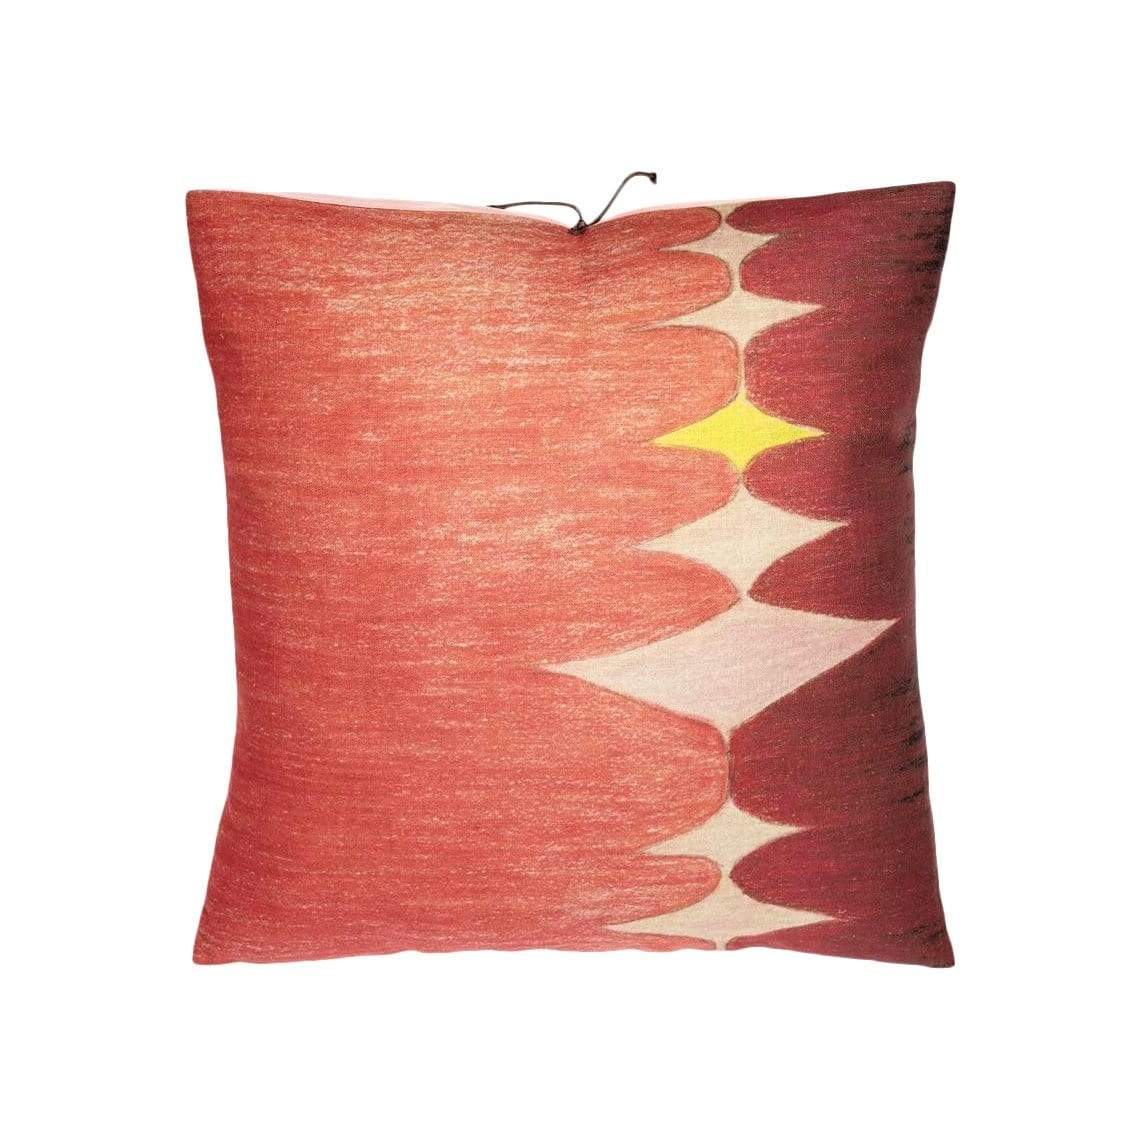 Michele Varian Cushions & Throws Default Printed Linen Pillow Multi Spear Pink